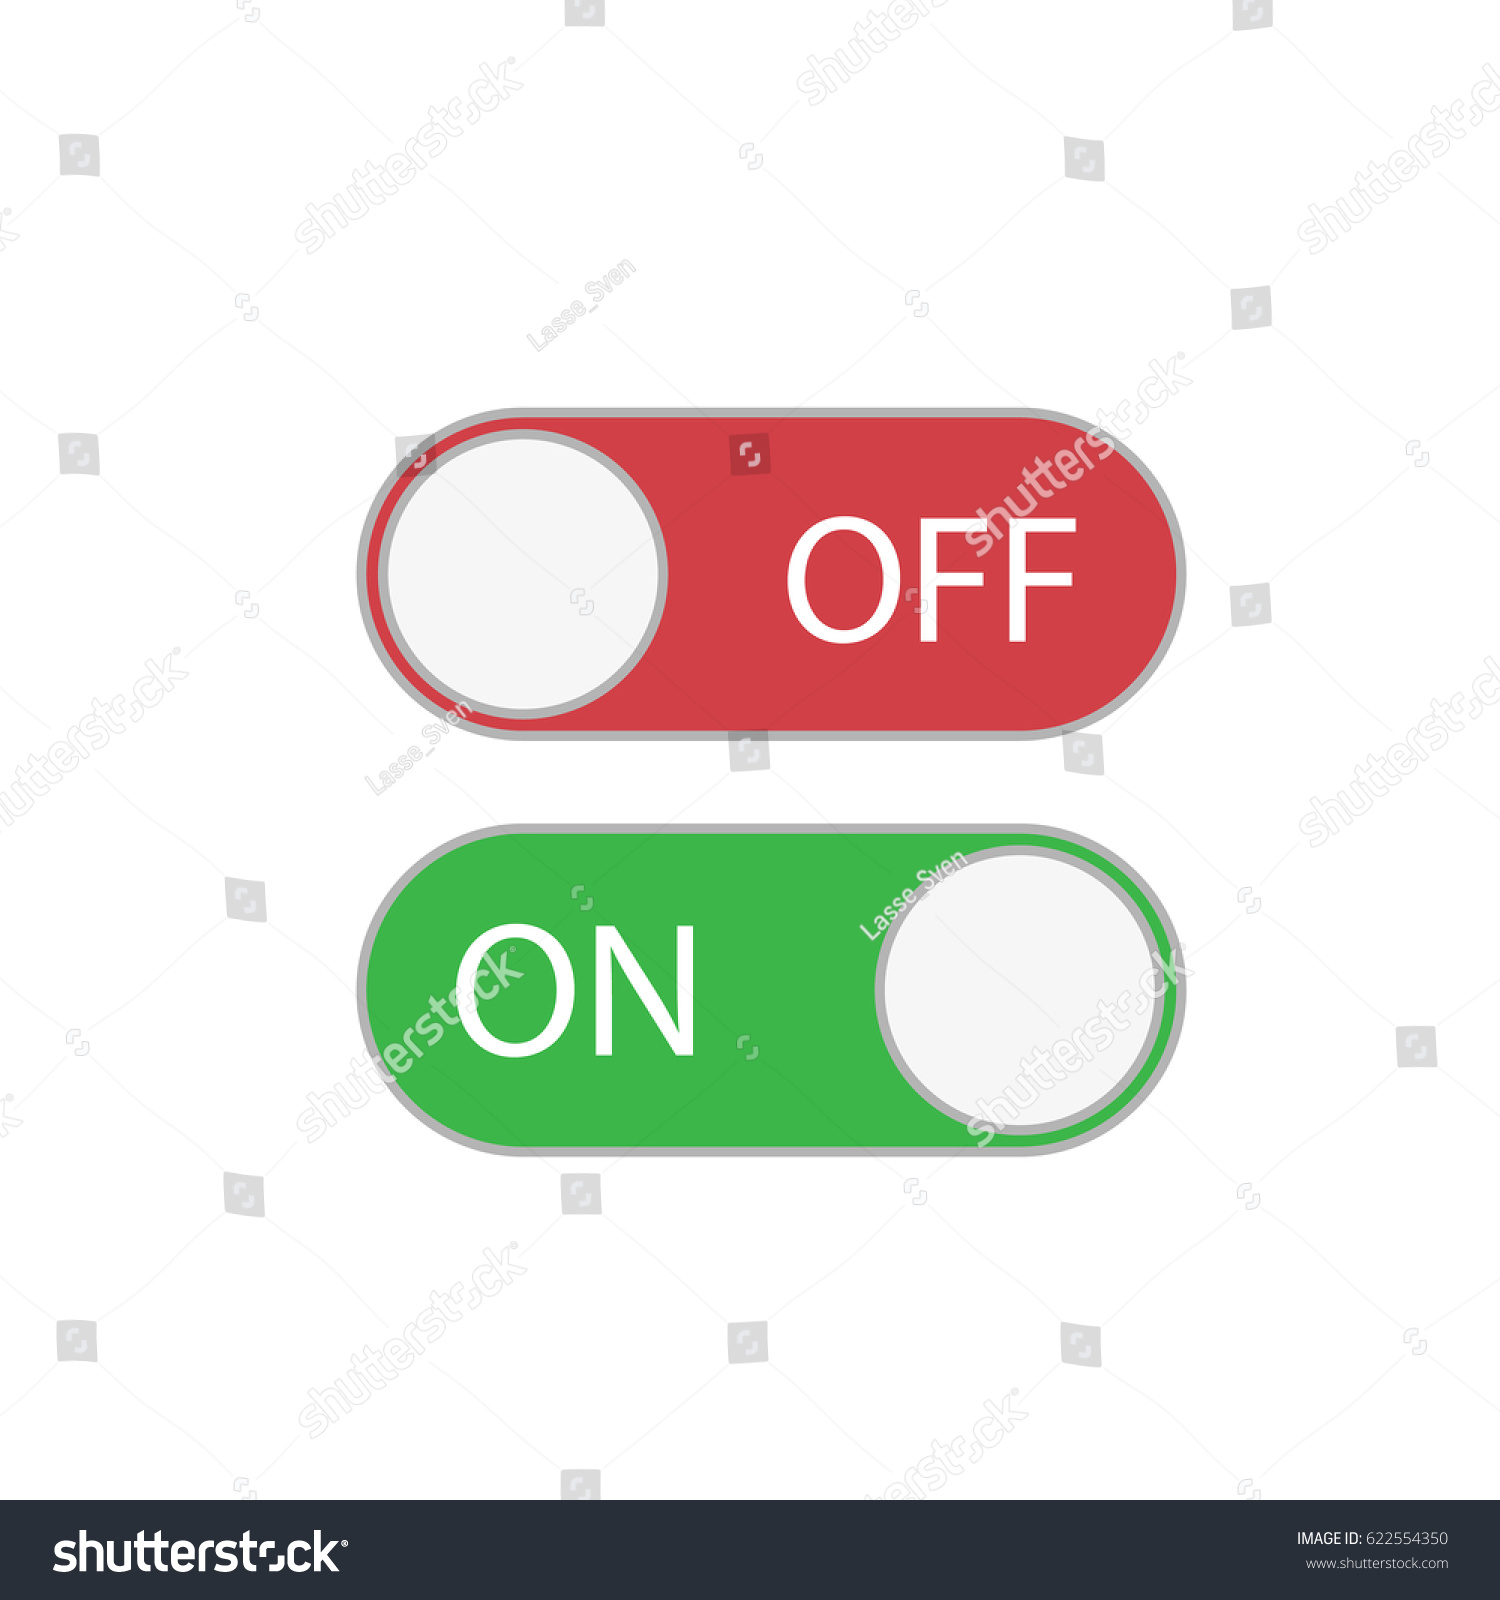 Off and on switch symbols dolgular off and on switch symbols dolgular biocorpaavc